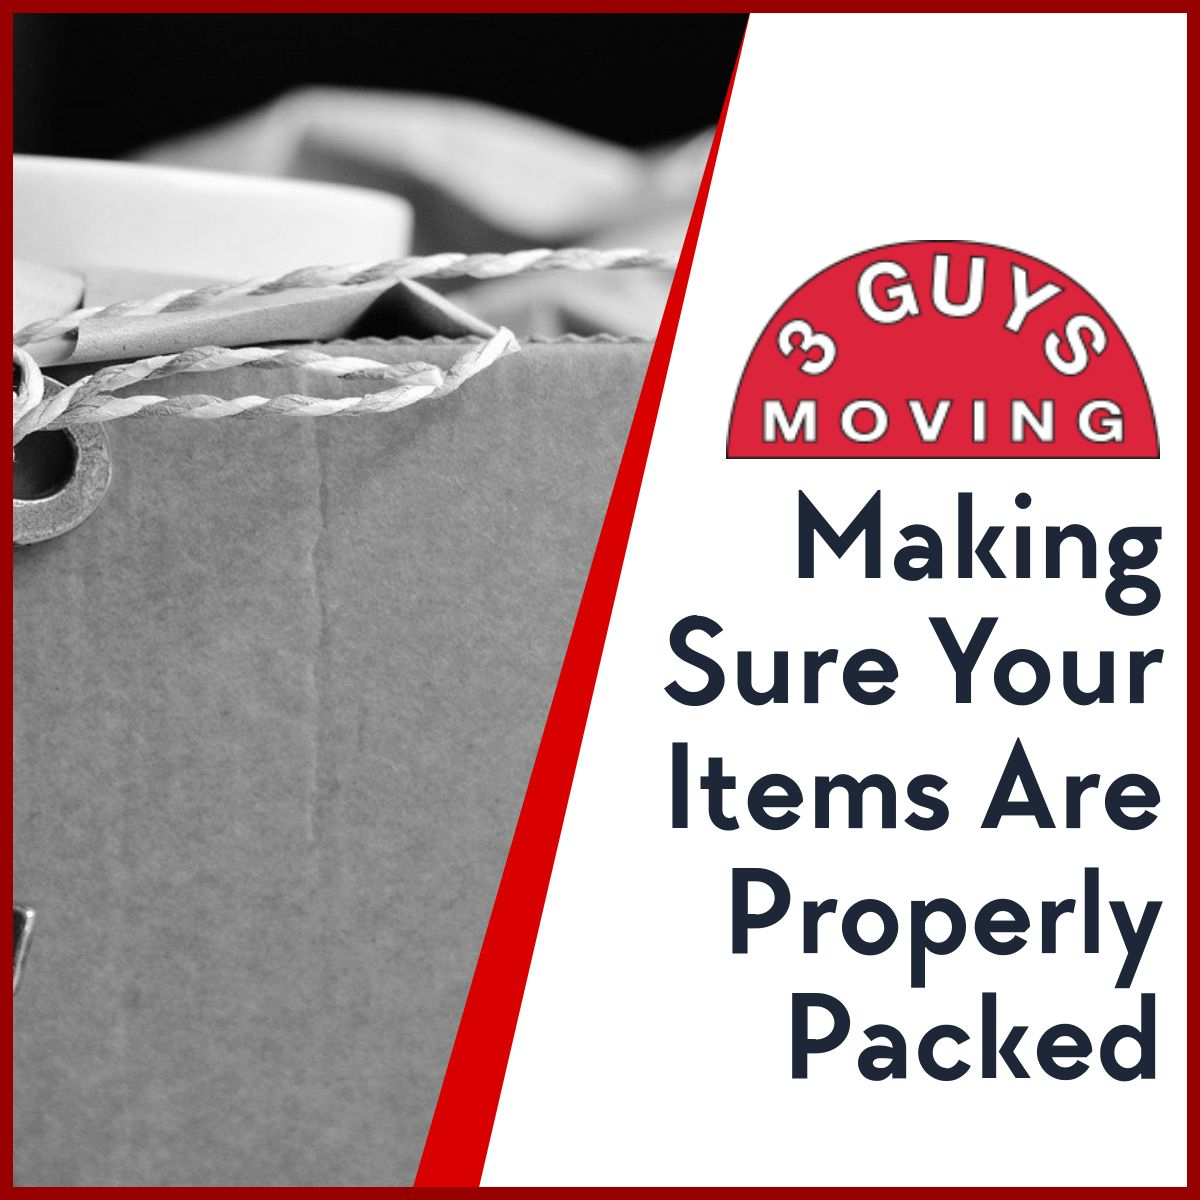 Making Sure Your Items Are Properly Packed - Making Sure Your Items Are Properly Packed